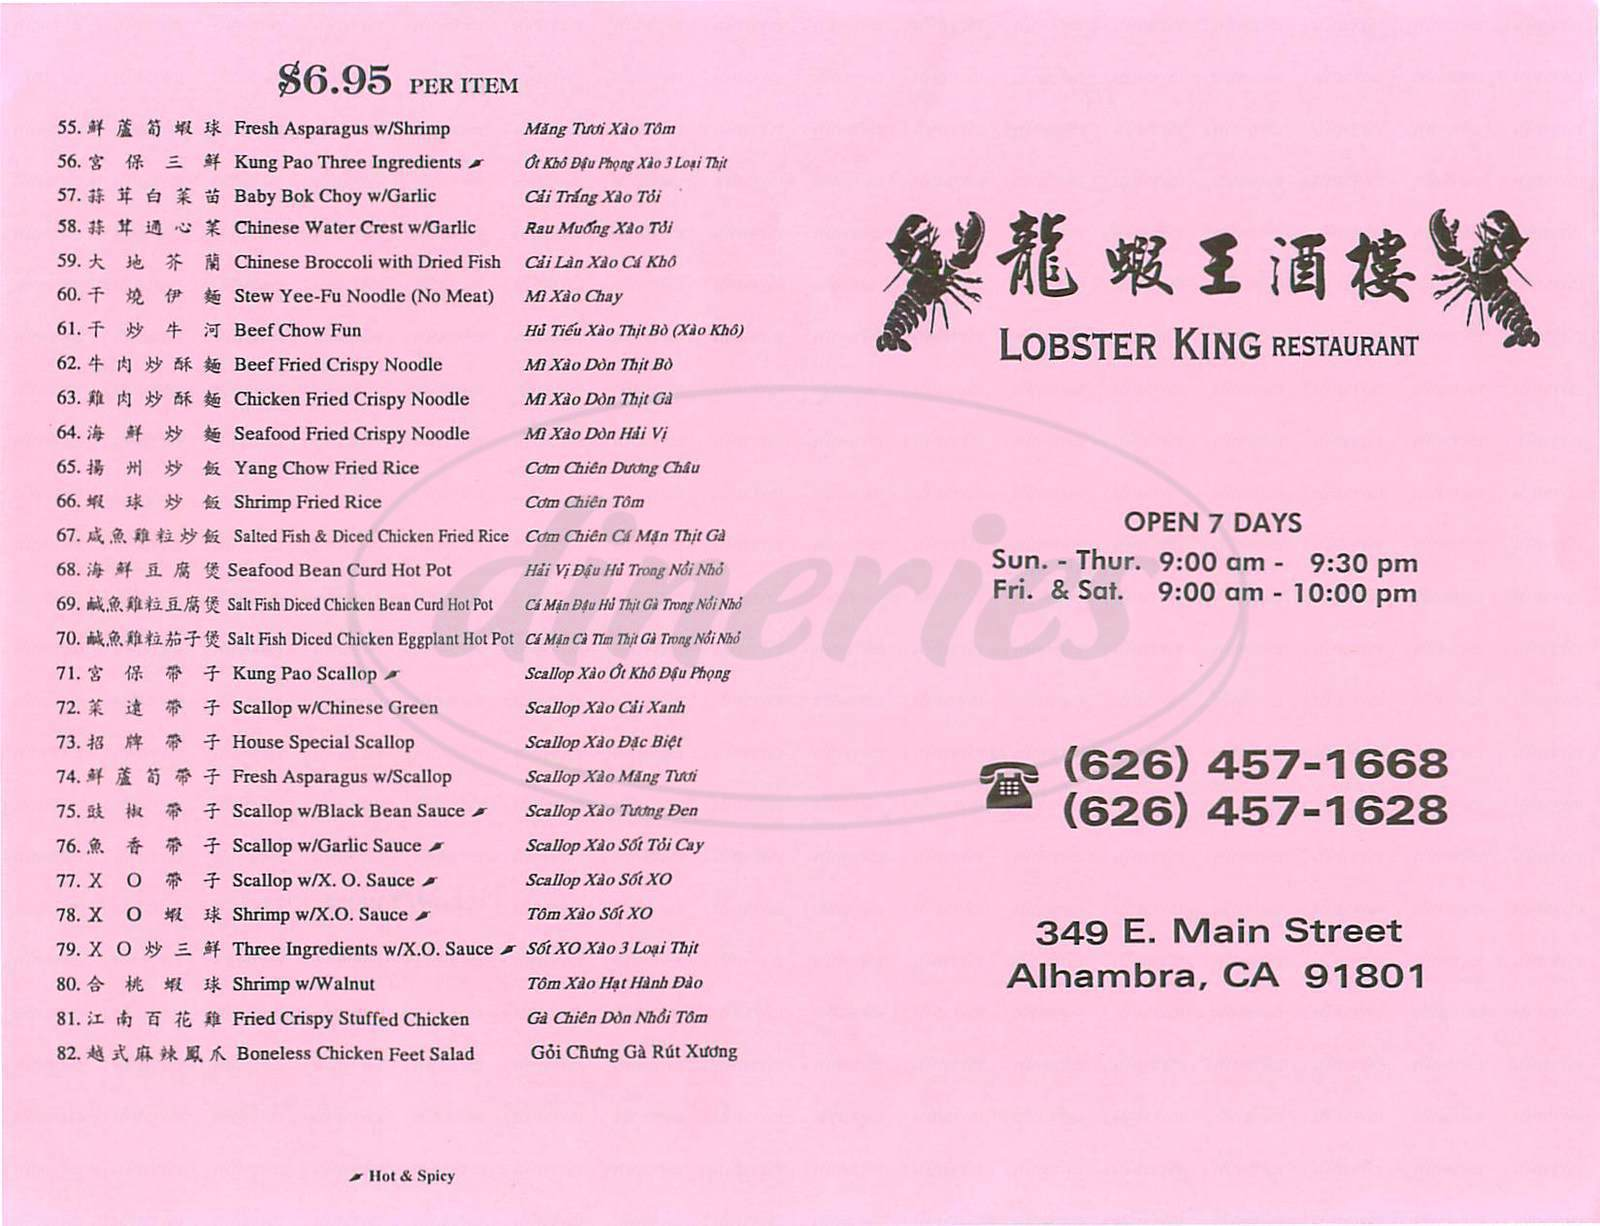 menu for Lobster King Restaurant